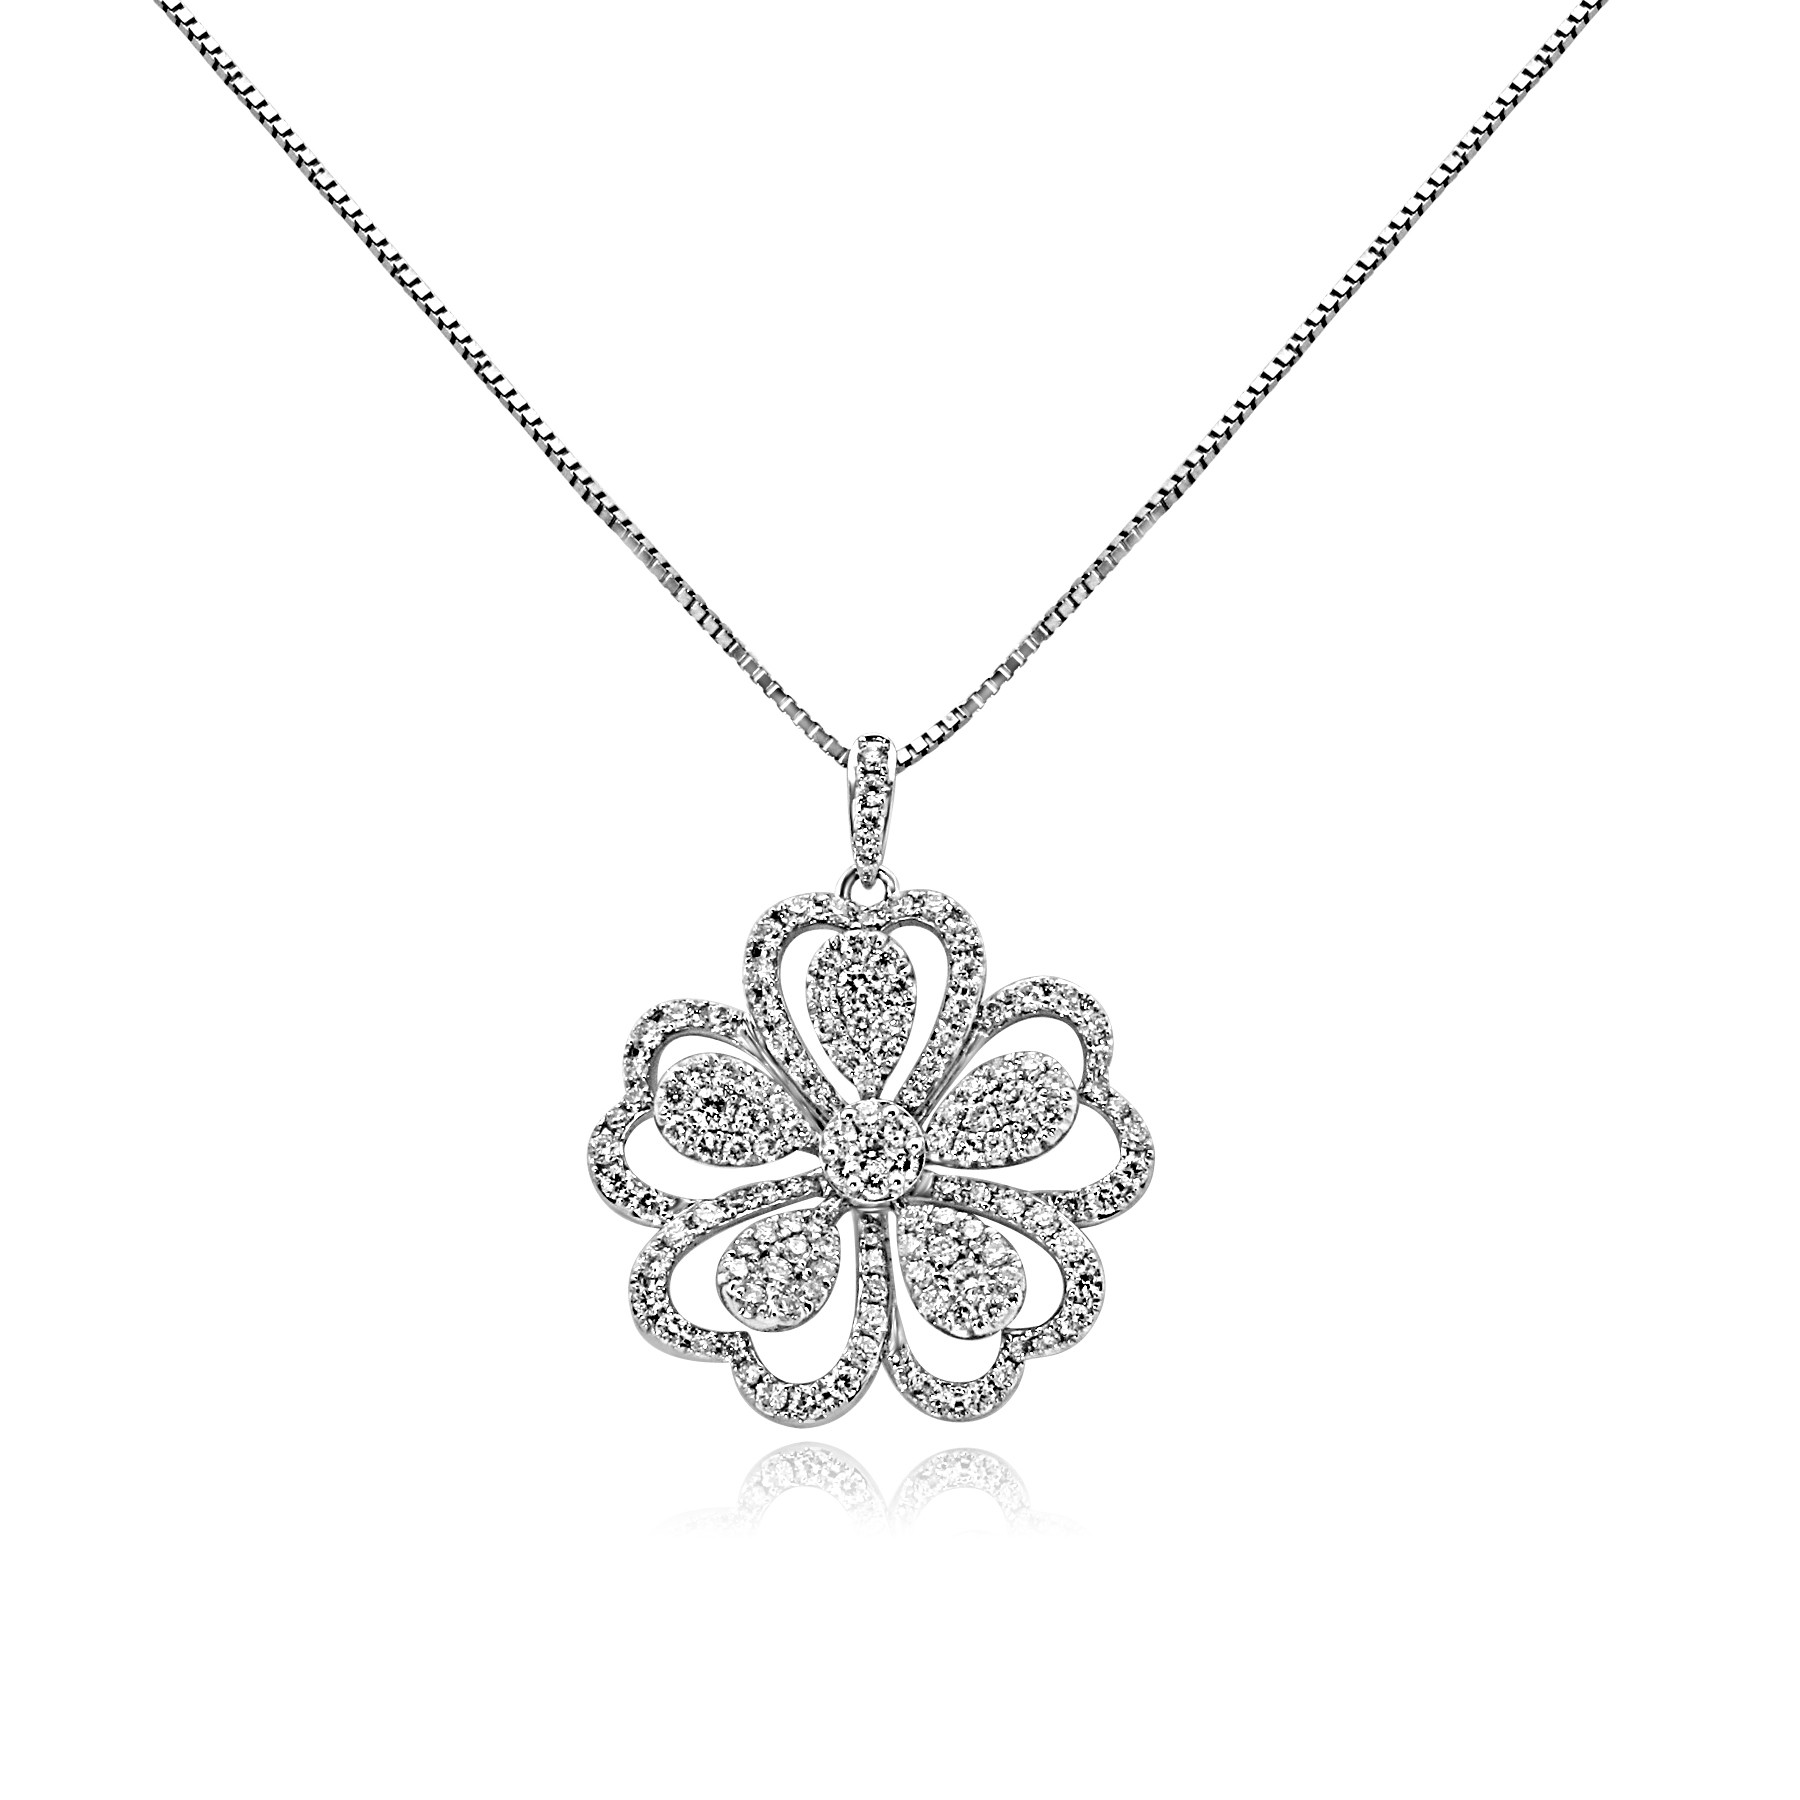 14k w/g diamond flower necklace